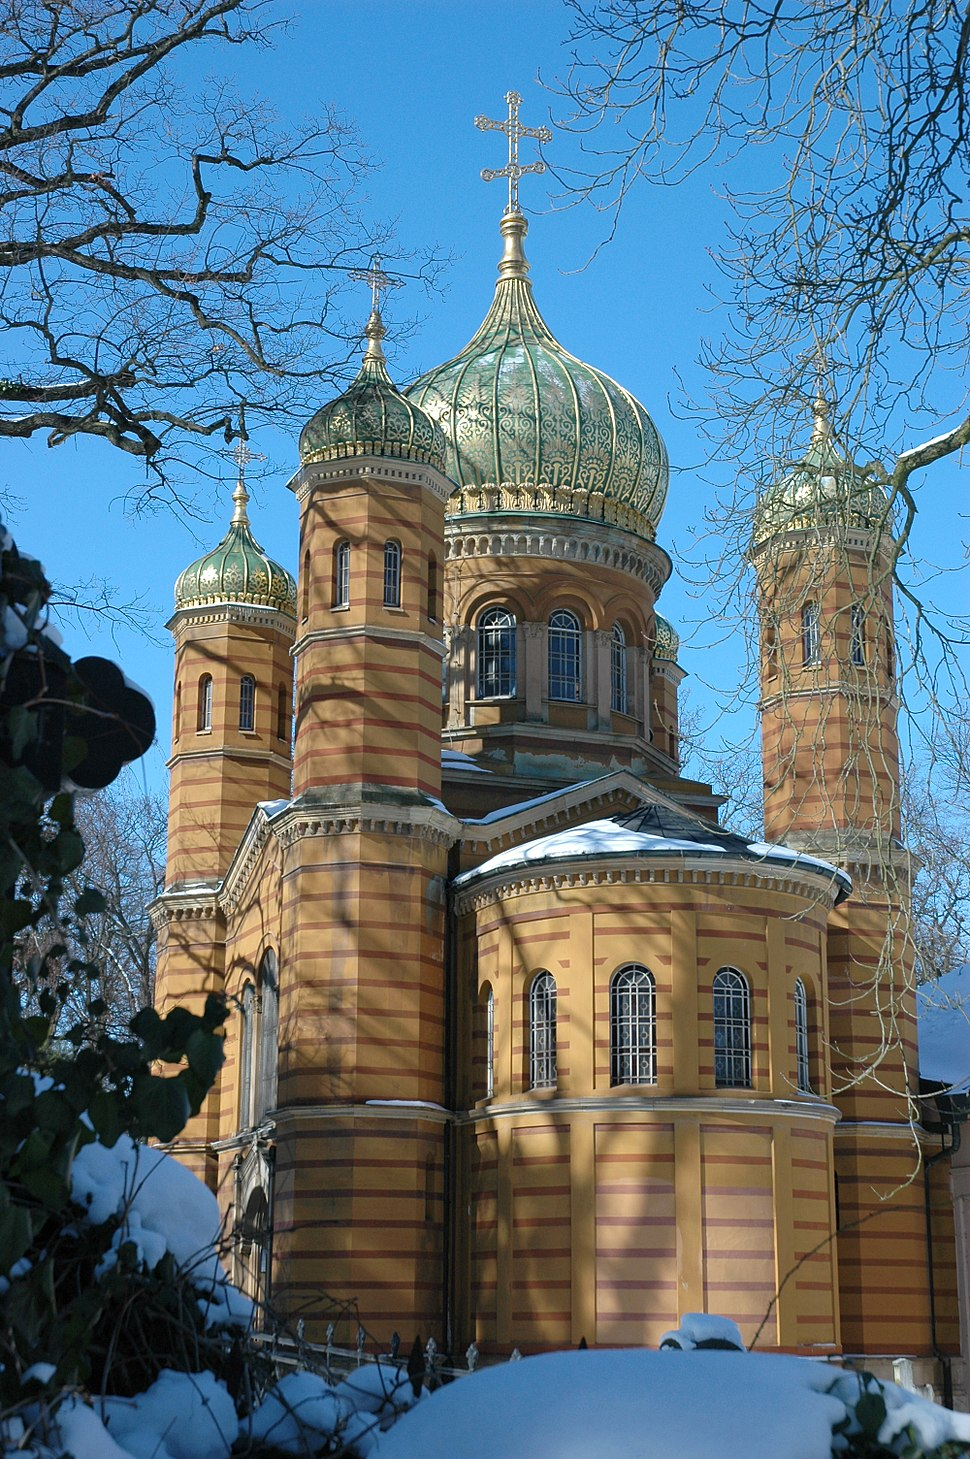 Russ orthodoxe kirche we2